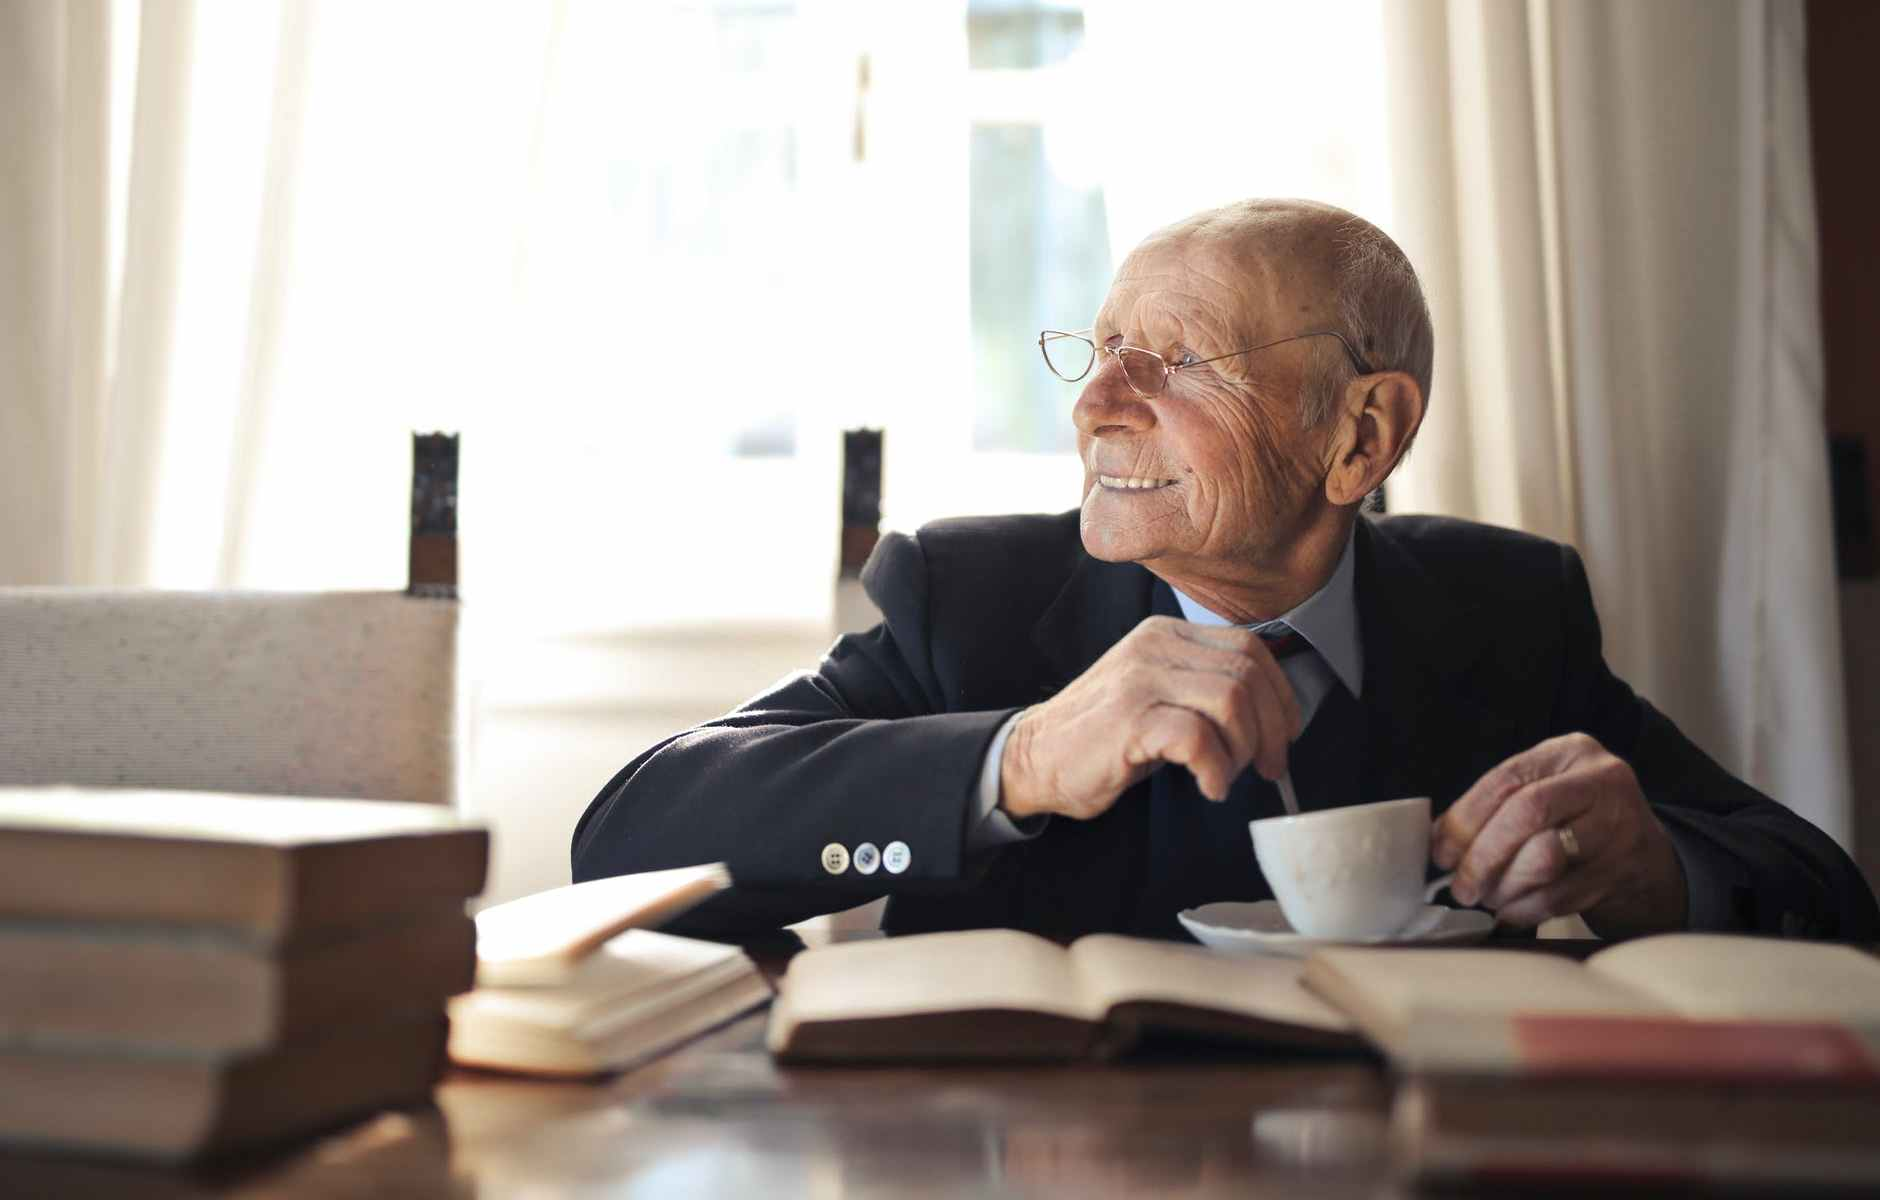 senior man drinking hot beverage while sitting at table with books